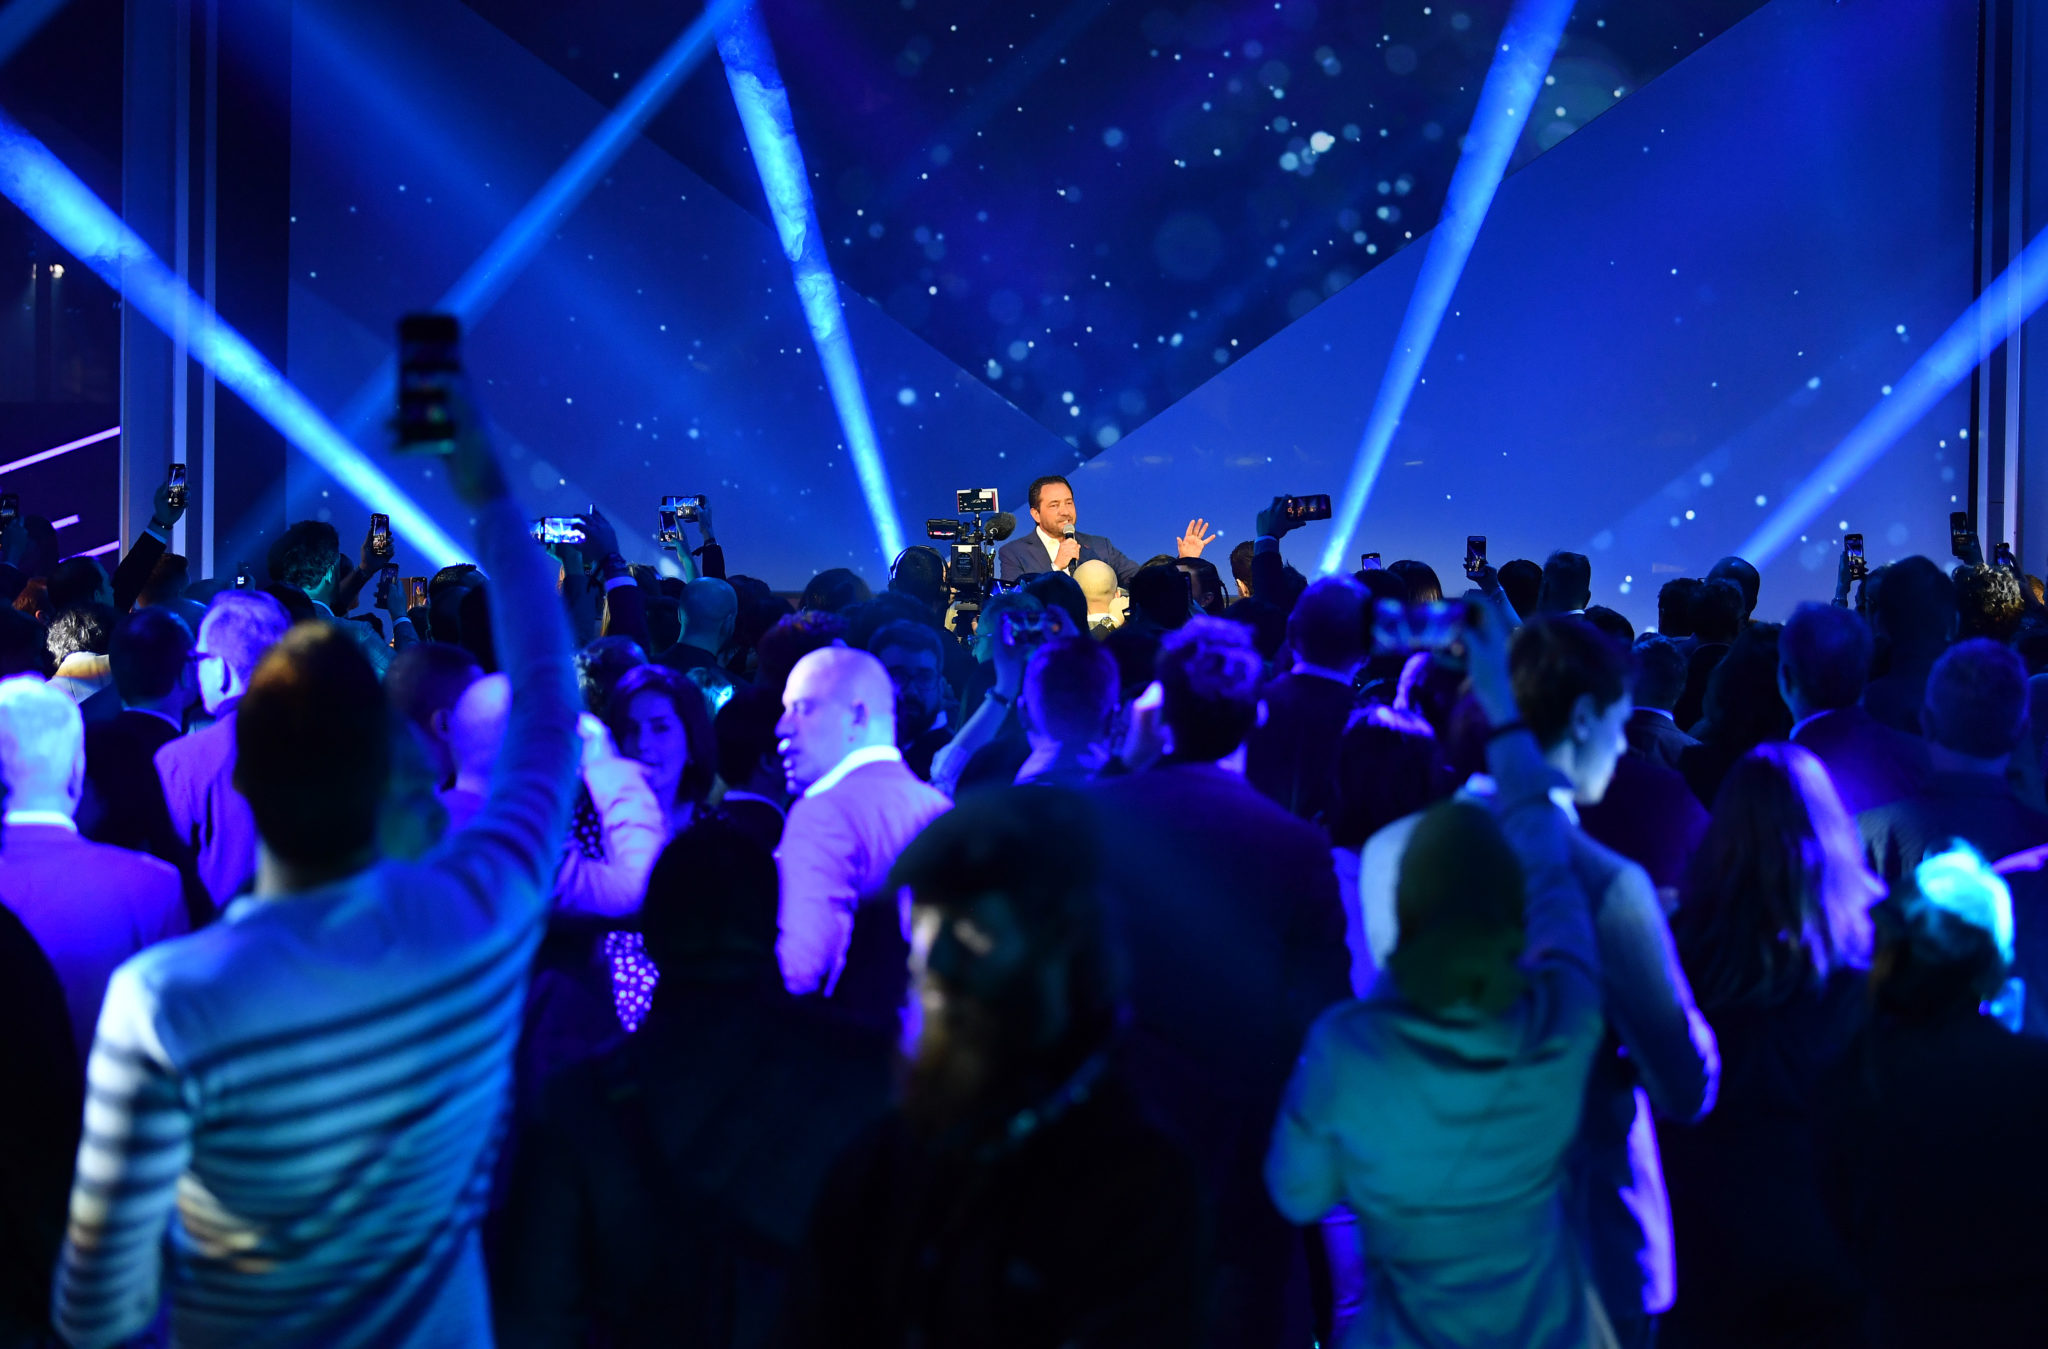 Zenith High Frequency Party At Baselworld 2019